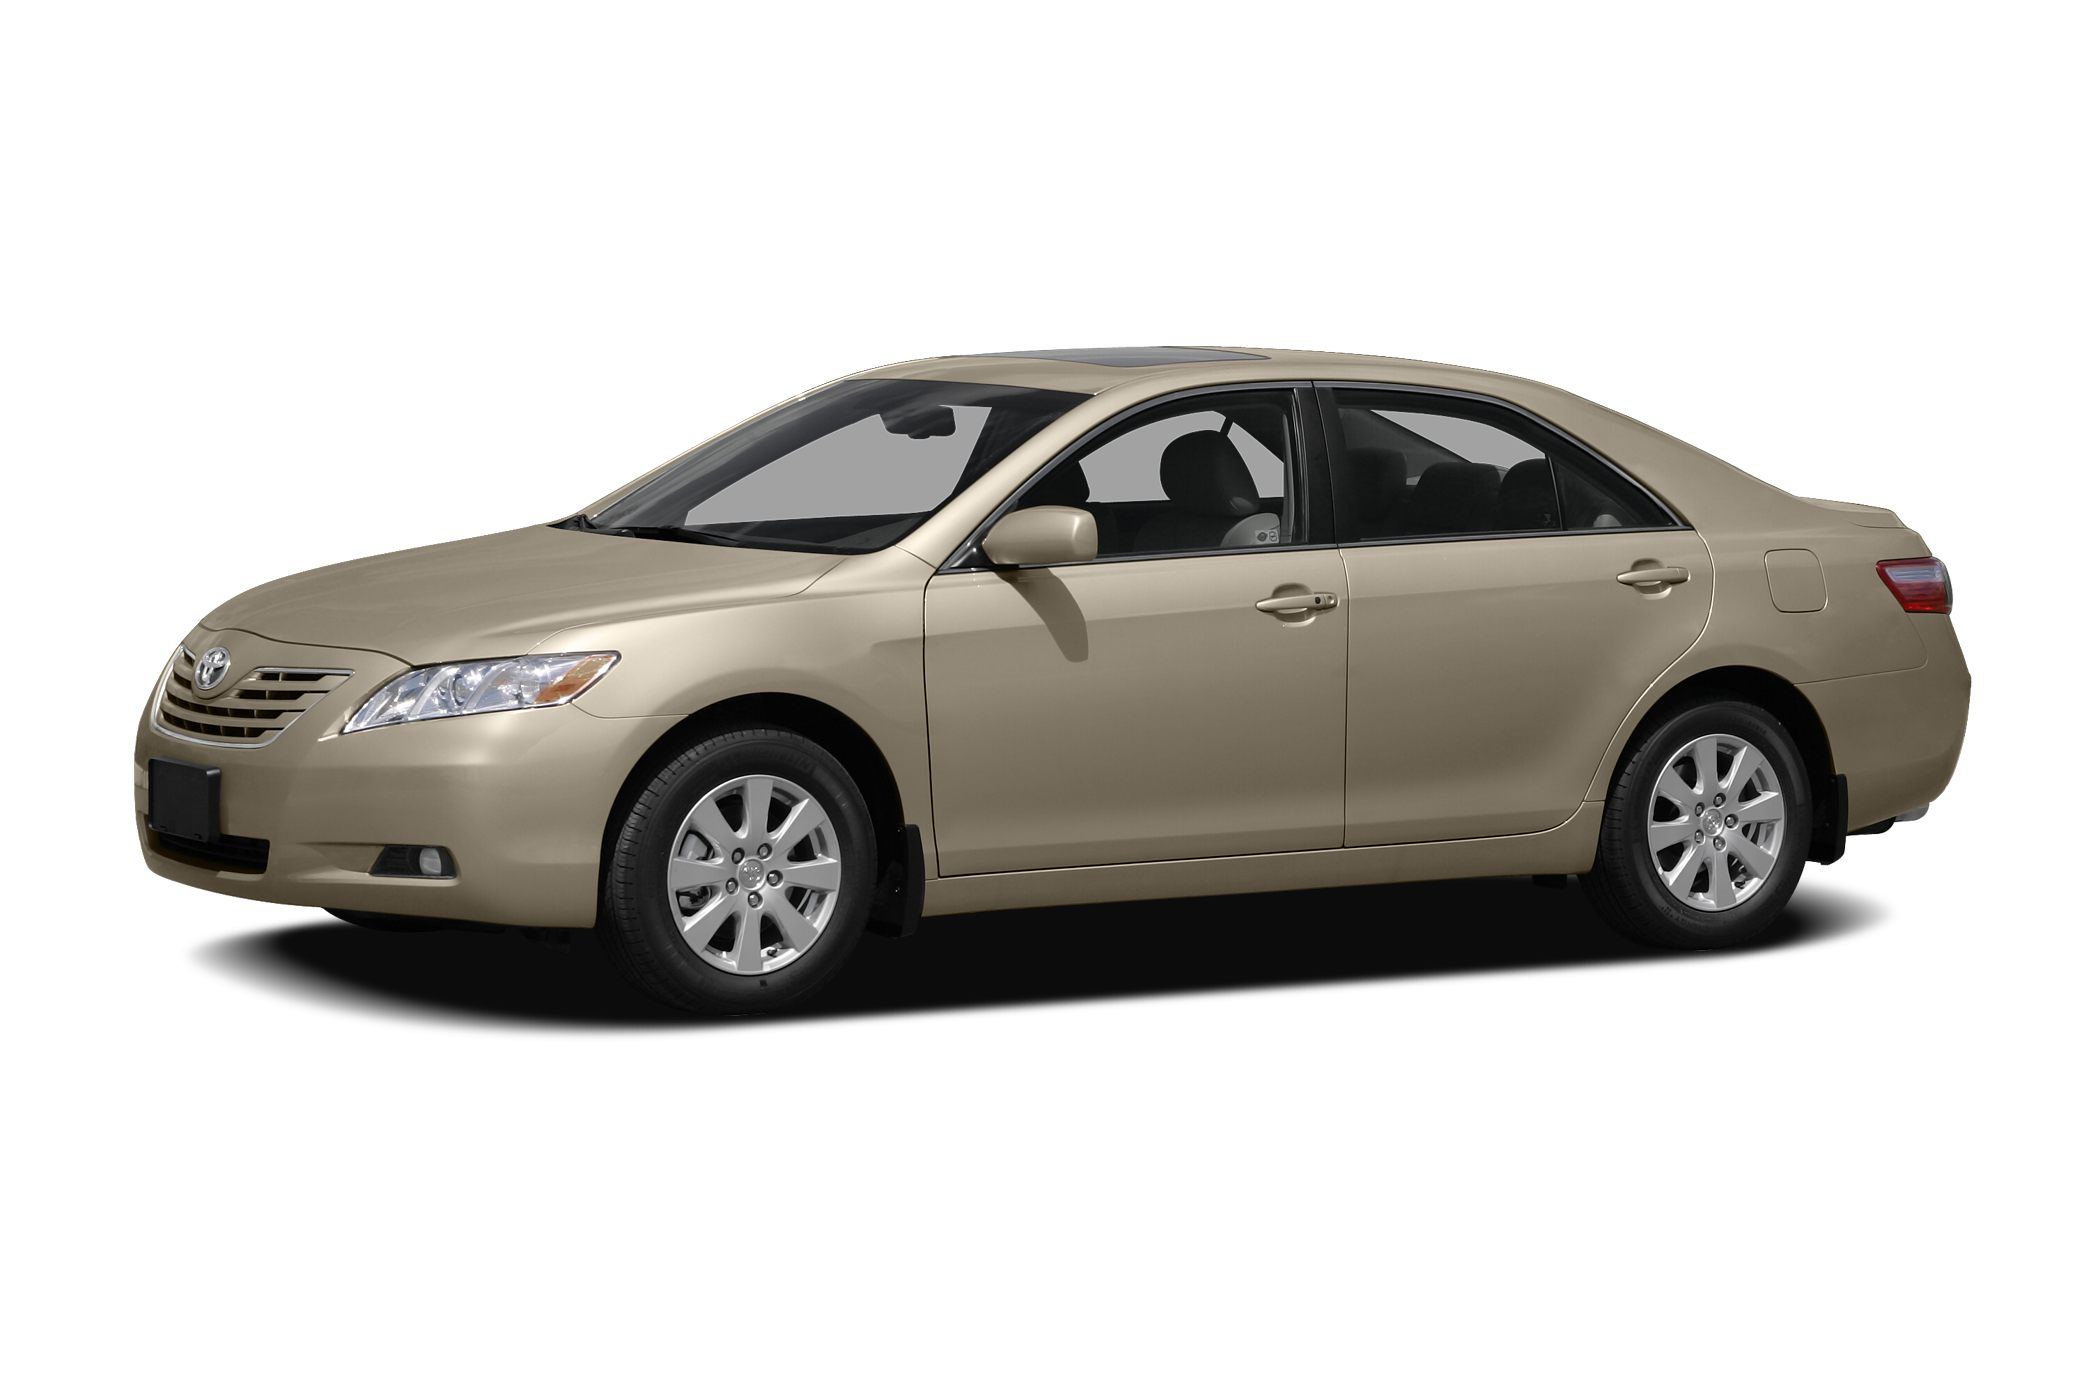 2009 Toyota Camry LE Sedan for sale in Philadelphia for $13,920 with 59,726 miles.